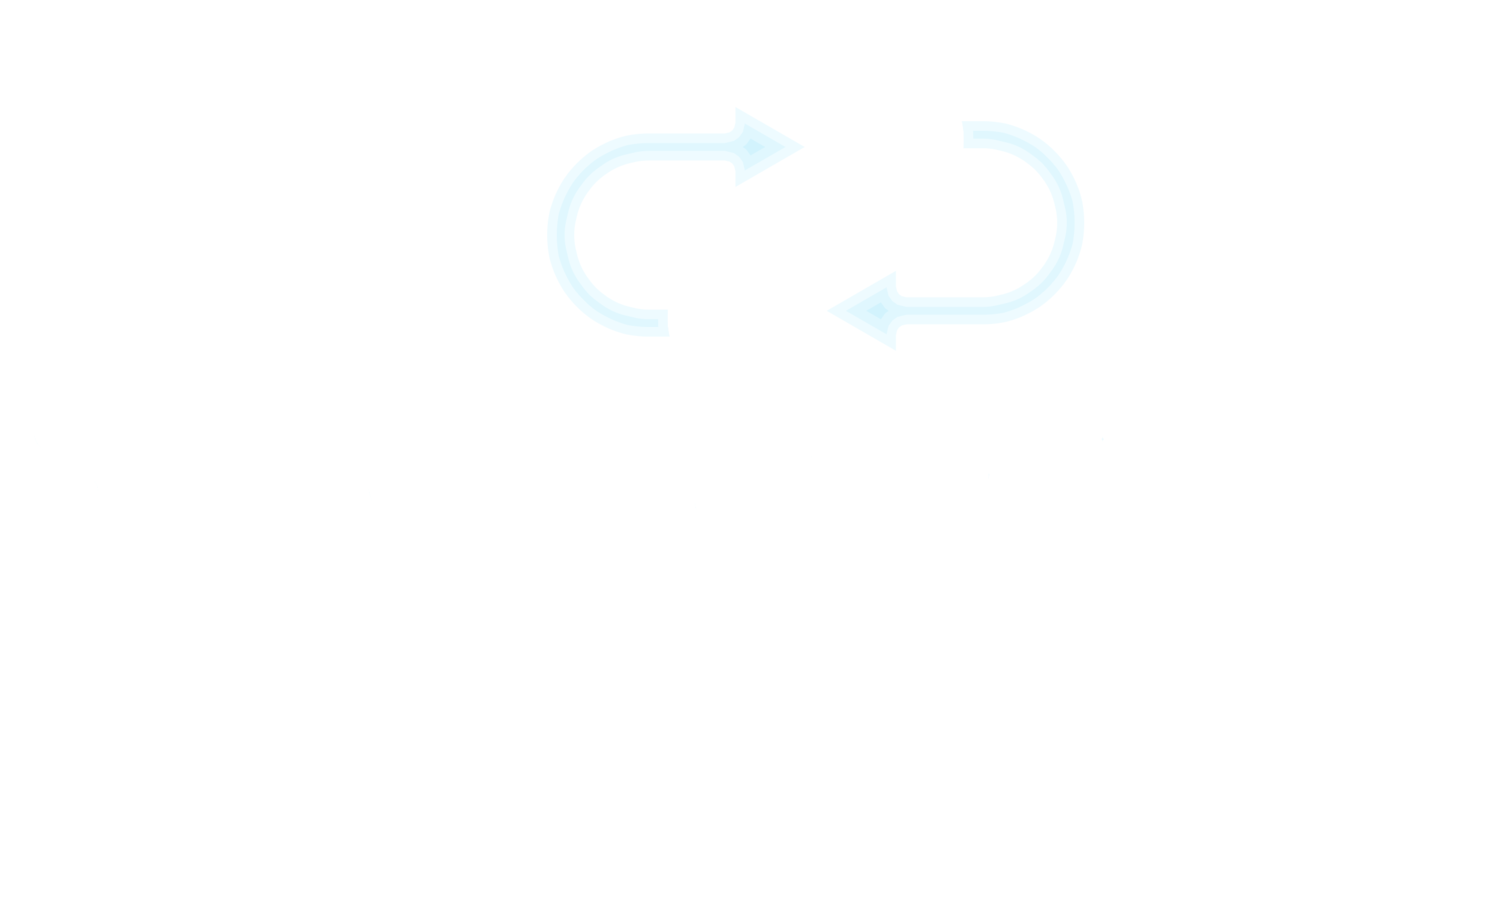 Sync Marketing